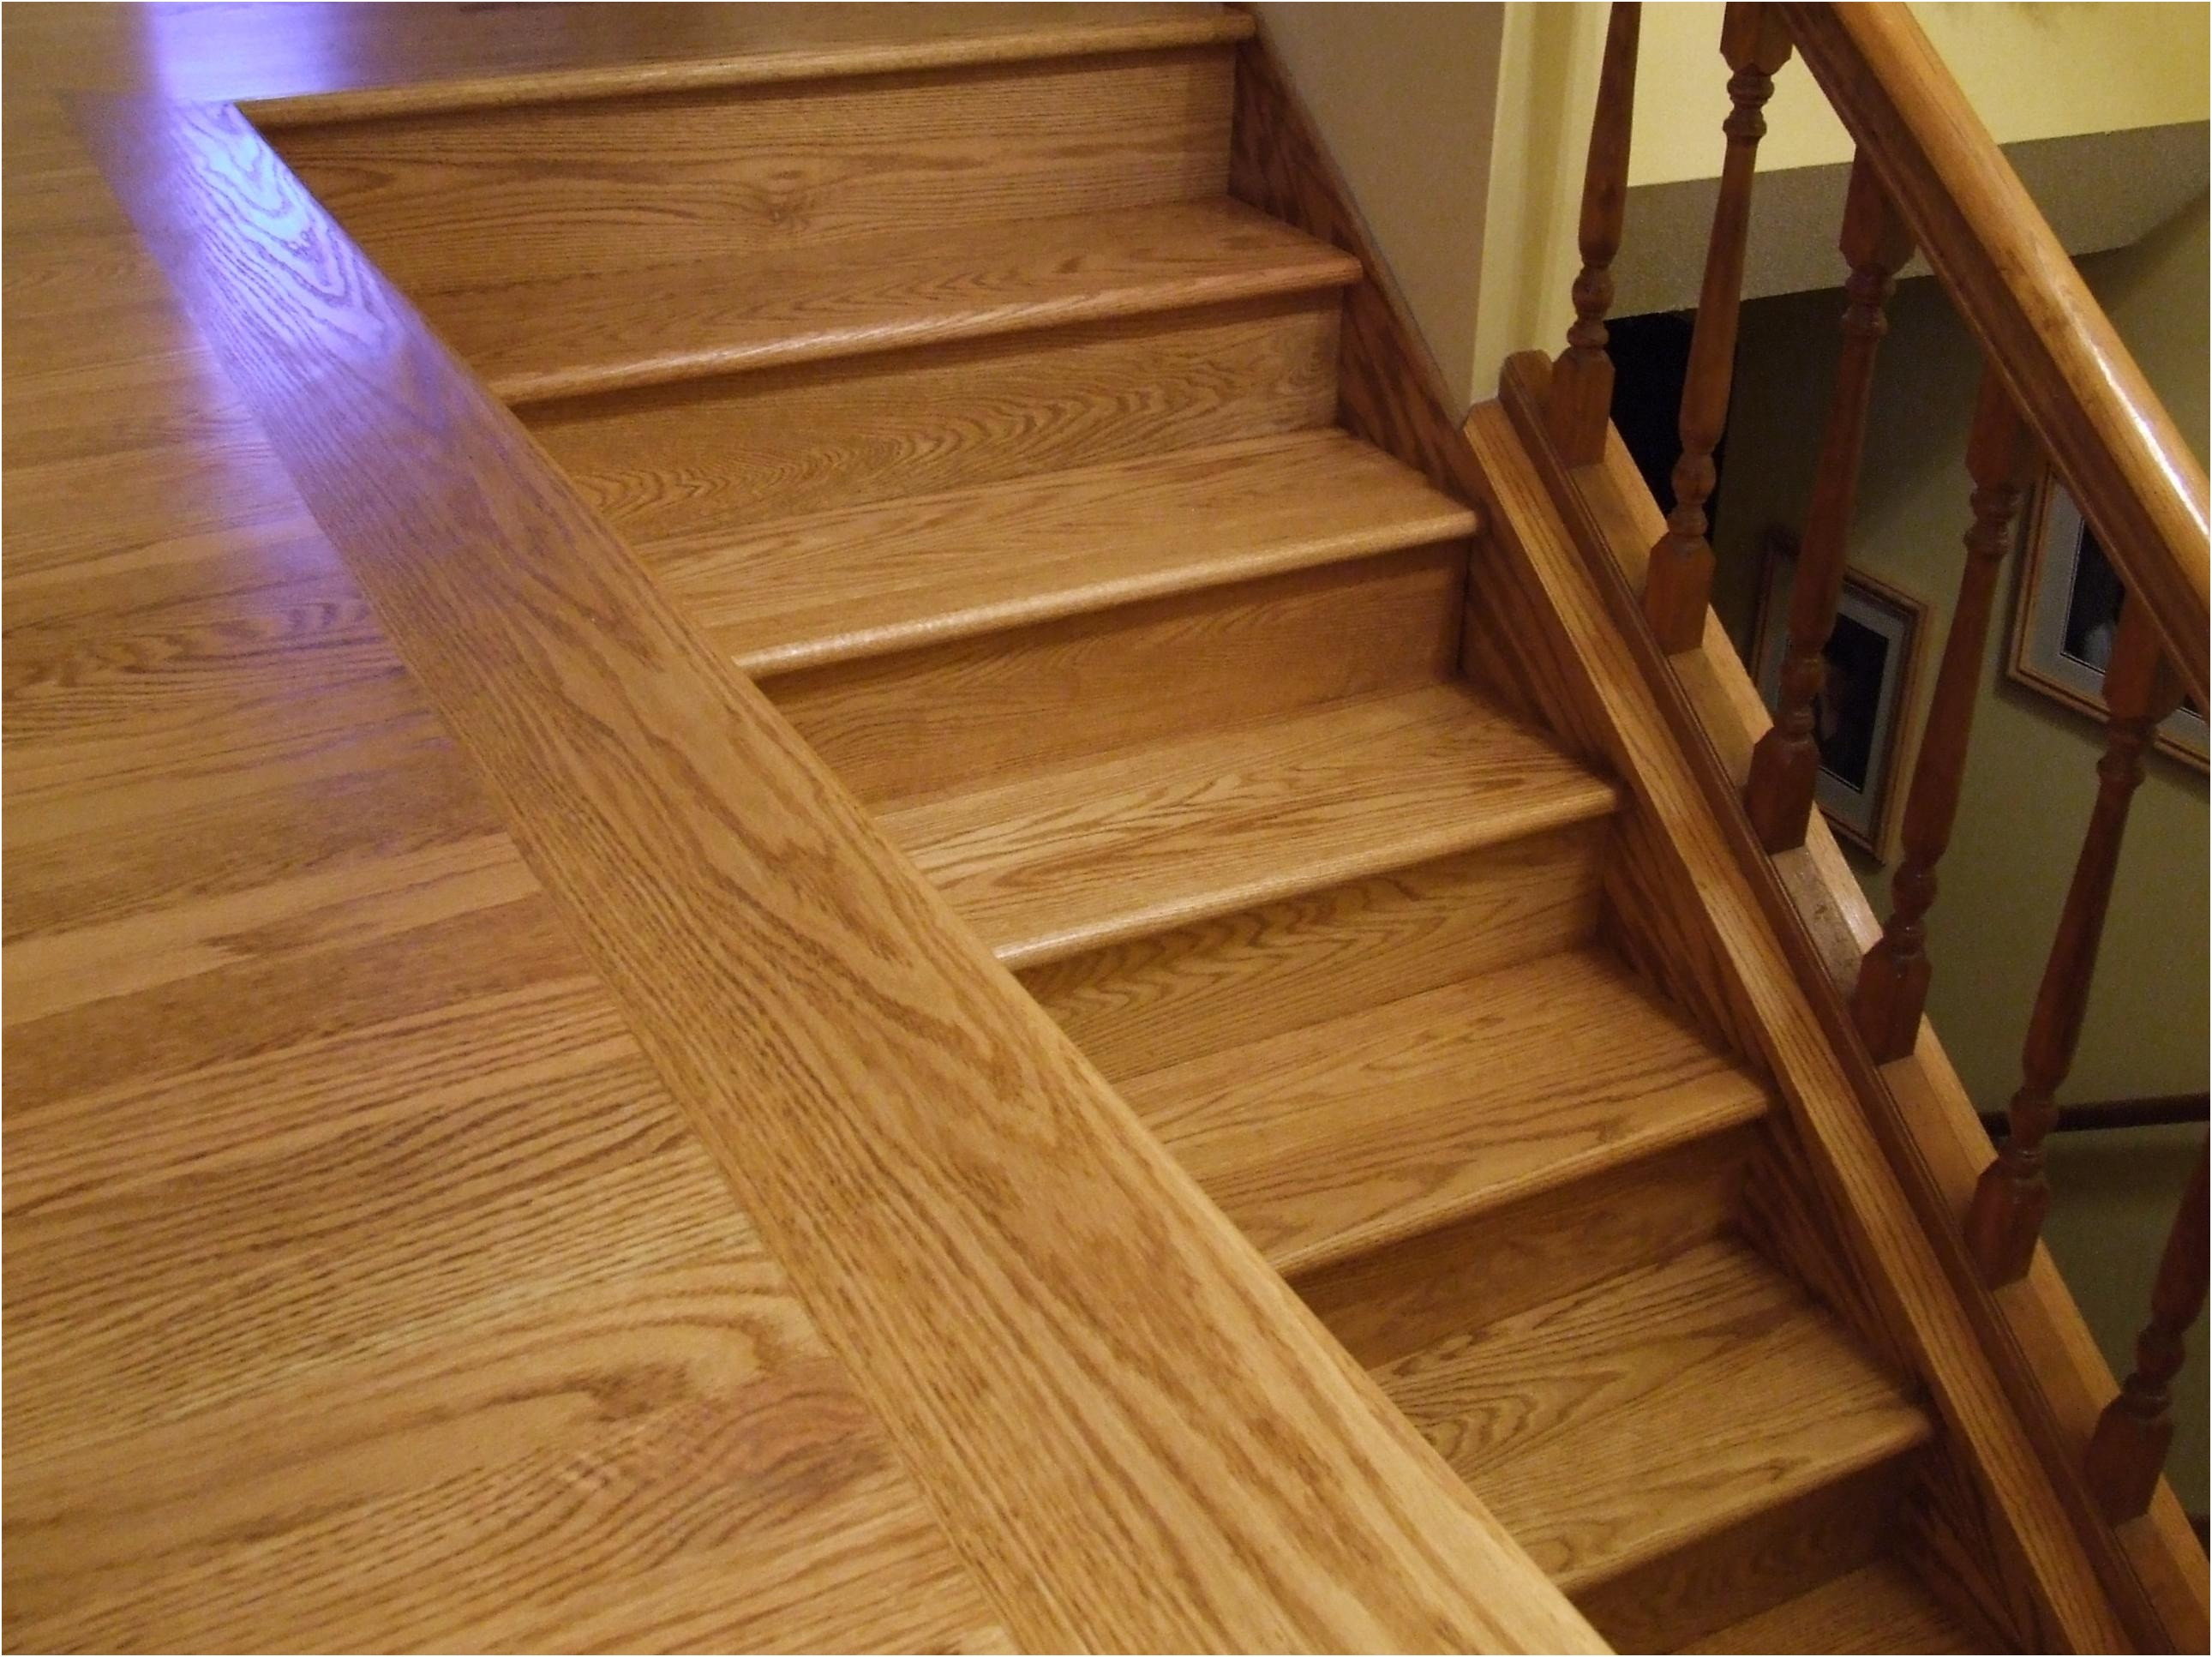 installing floating engineered hardwood flooring over concrete of how to install engineered wood flooring on concrete slab intended for how to install engineered wood flooring on concrete slab elegant hardwood floor installation how to put